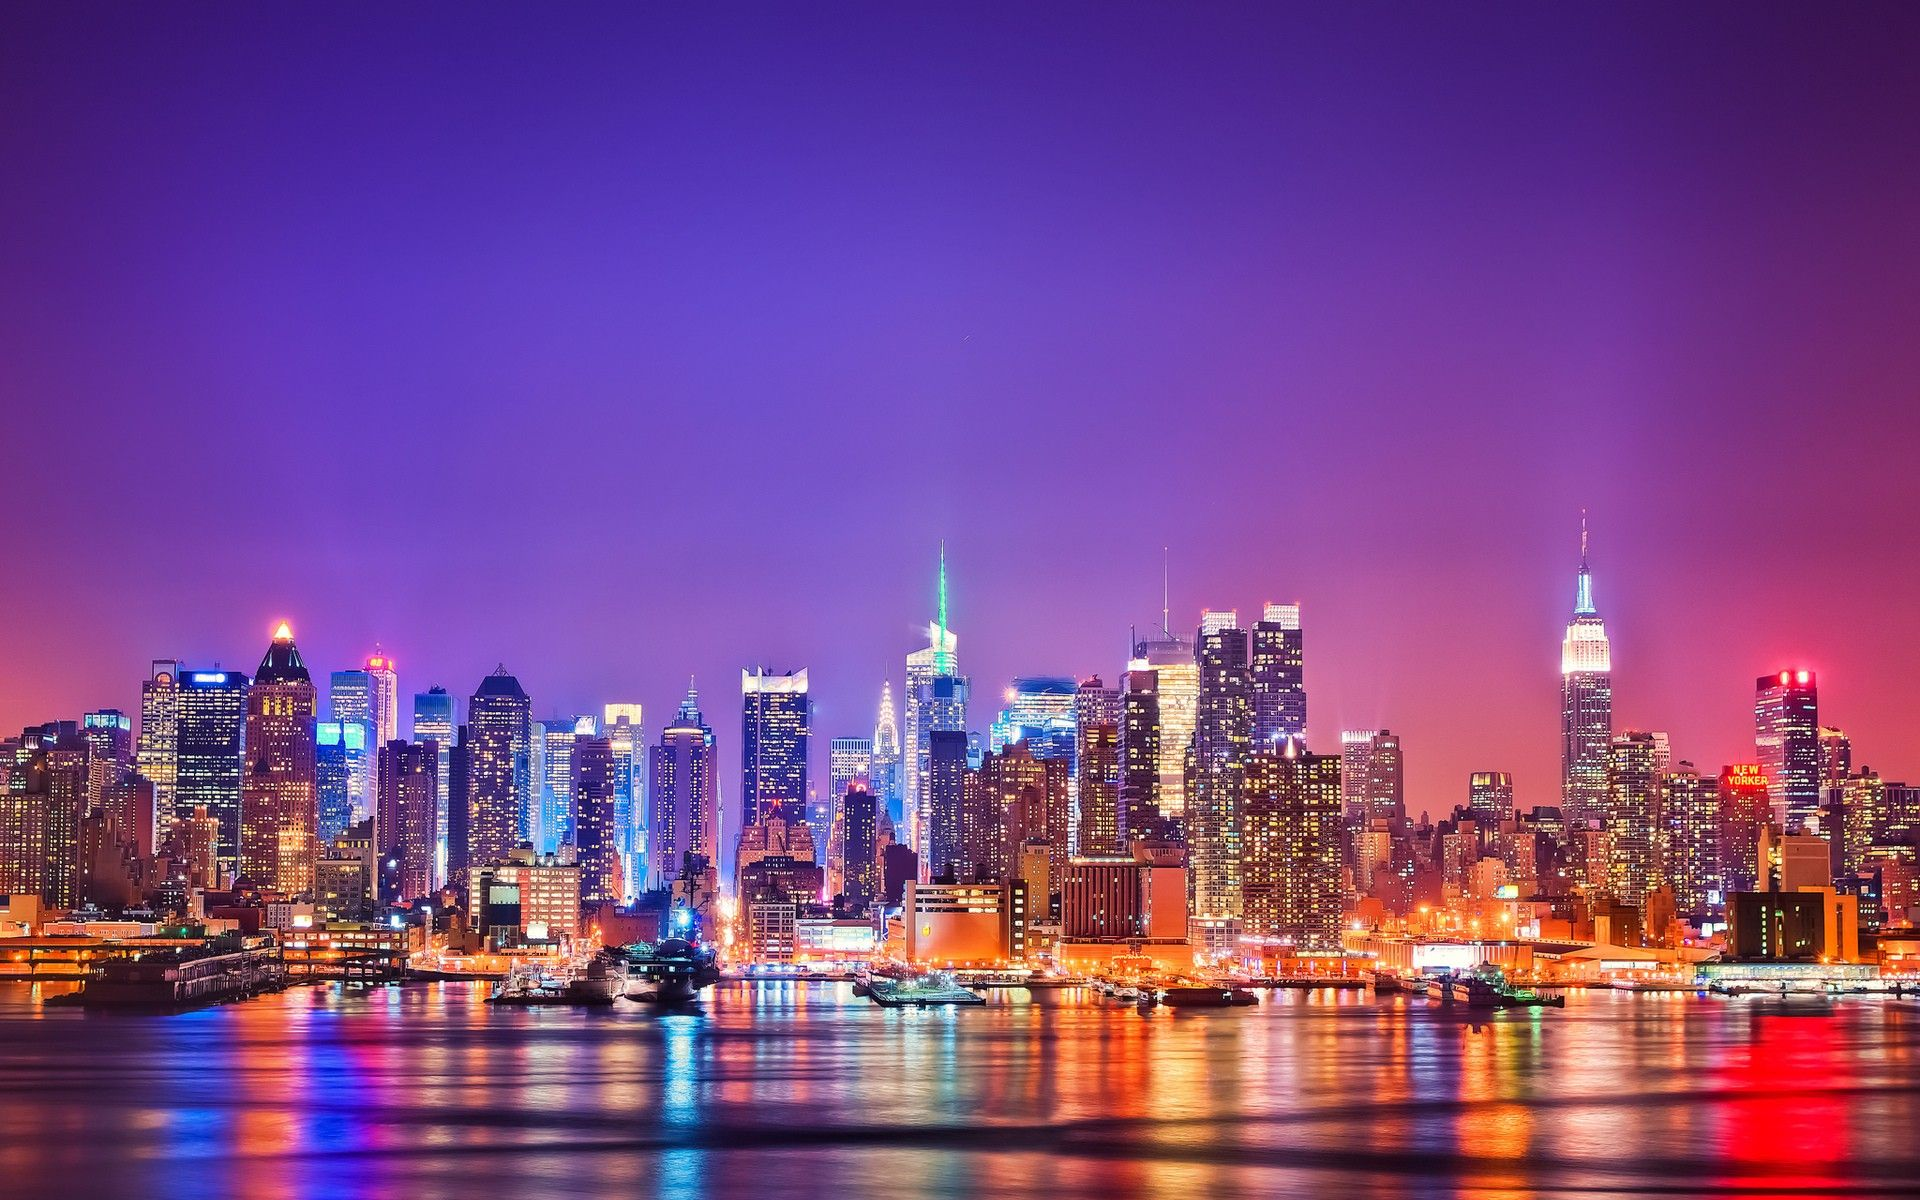 New York Skyline Wallpapers Top Free New York Skyline Backgrounds Wallpaperaccess